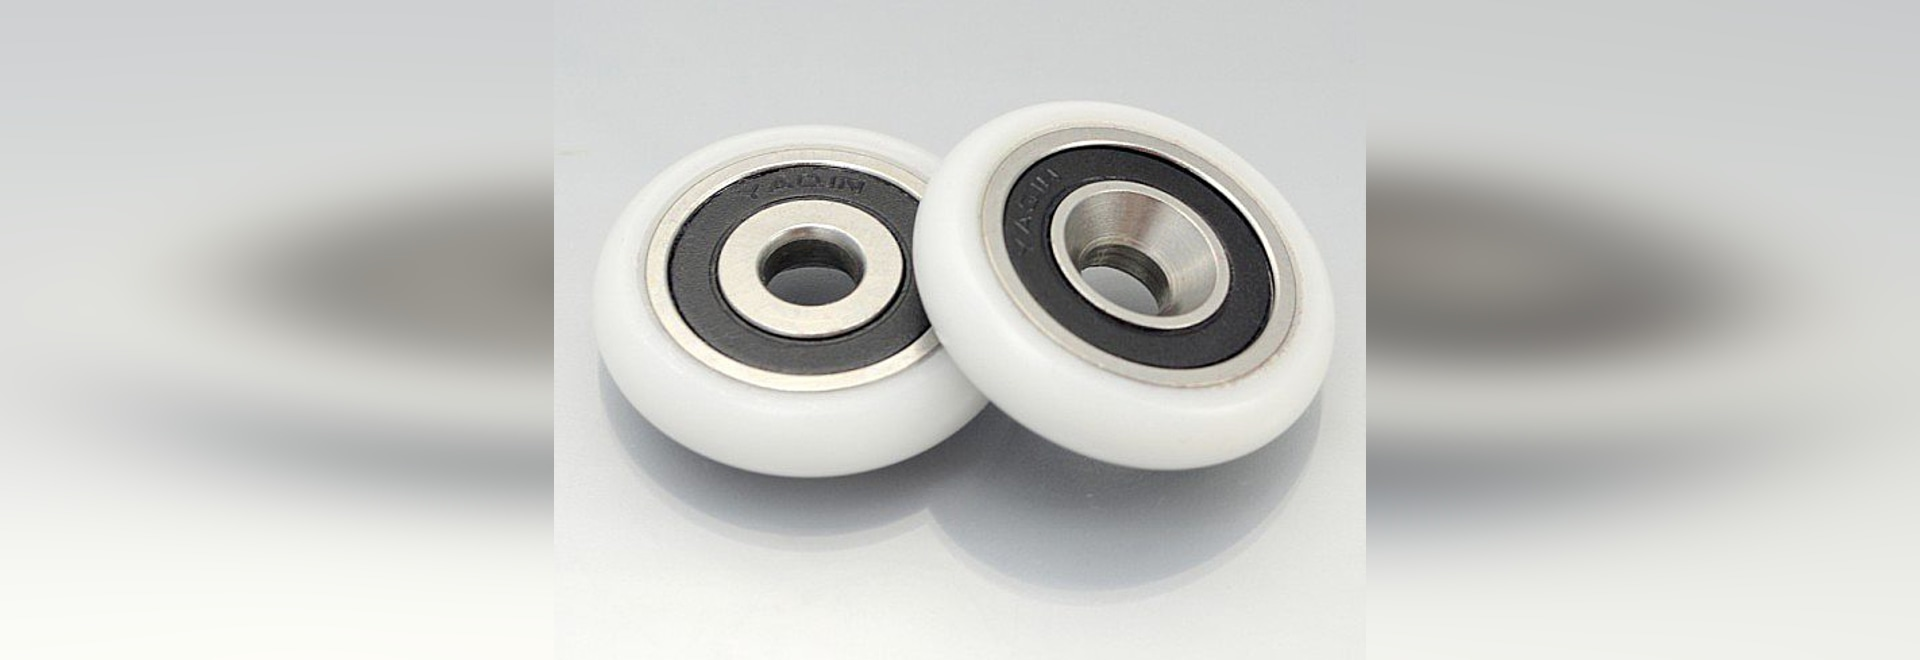 Sliding Bearing Roller Wheels in door and window : door bearing - pezcame.com